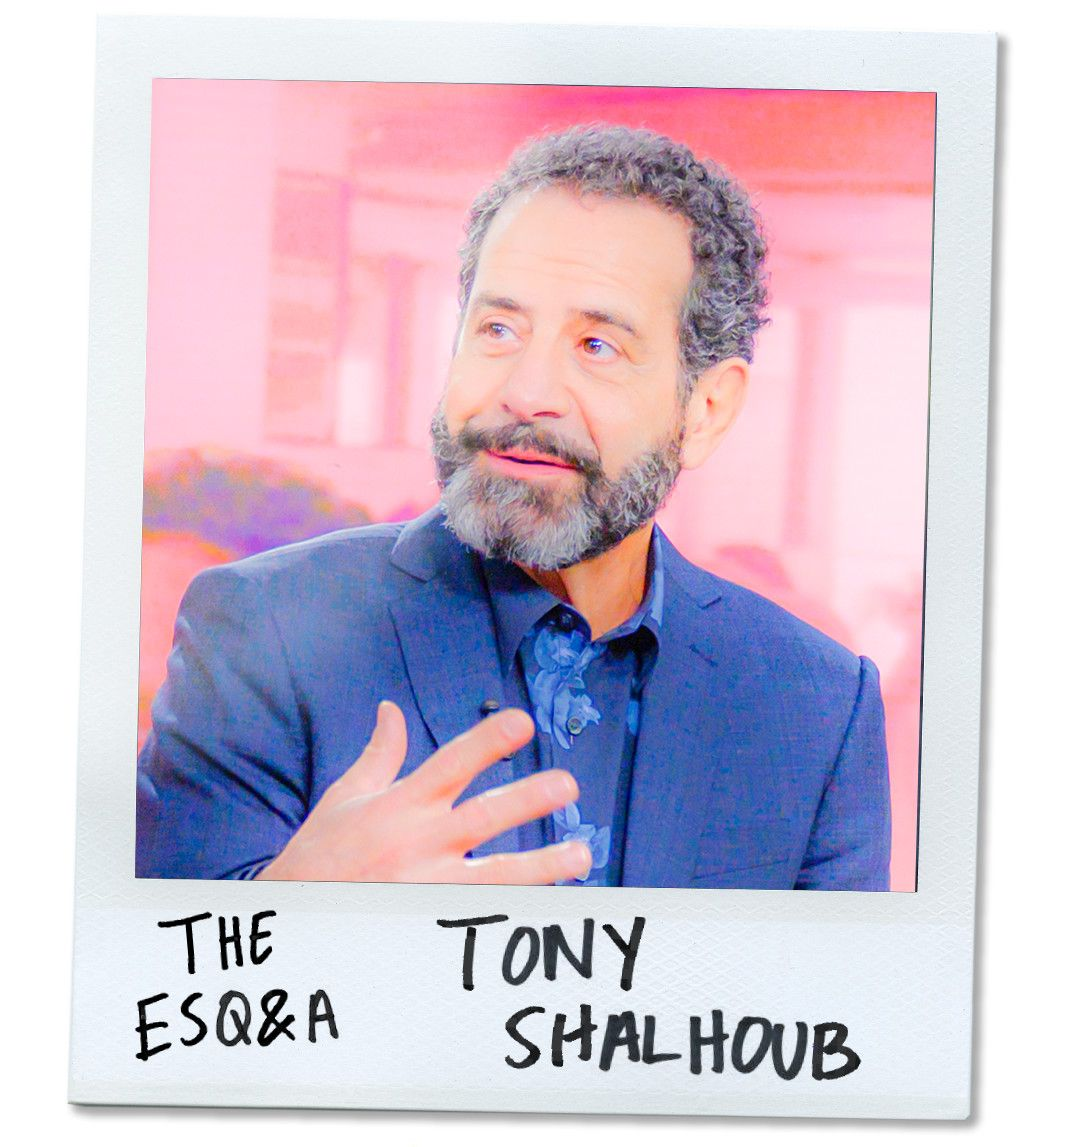 Tony Shalhoub Was Once Bill Murray's Cab Driver. Now He's America's Favorite Mid-Century Dad.